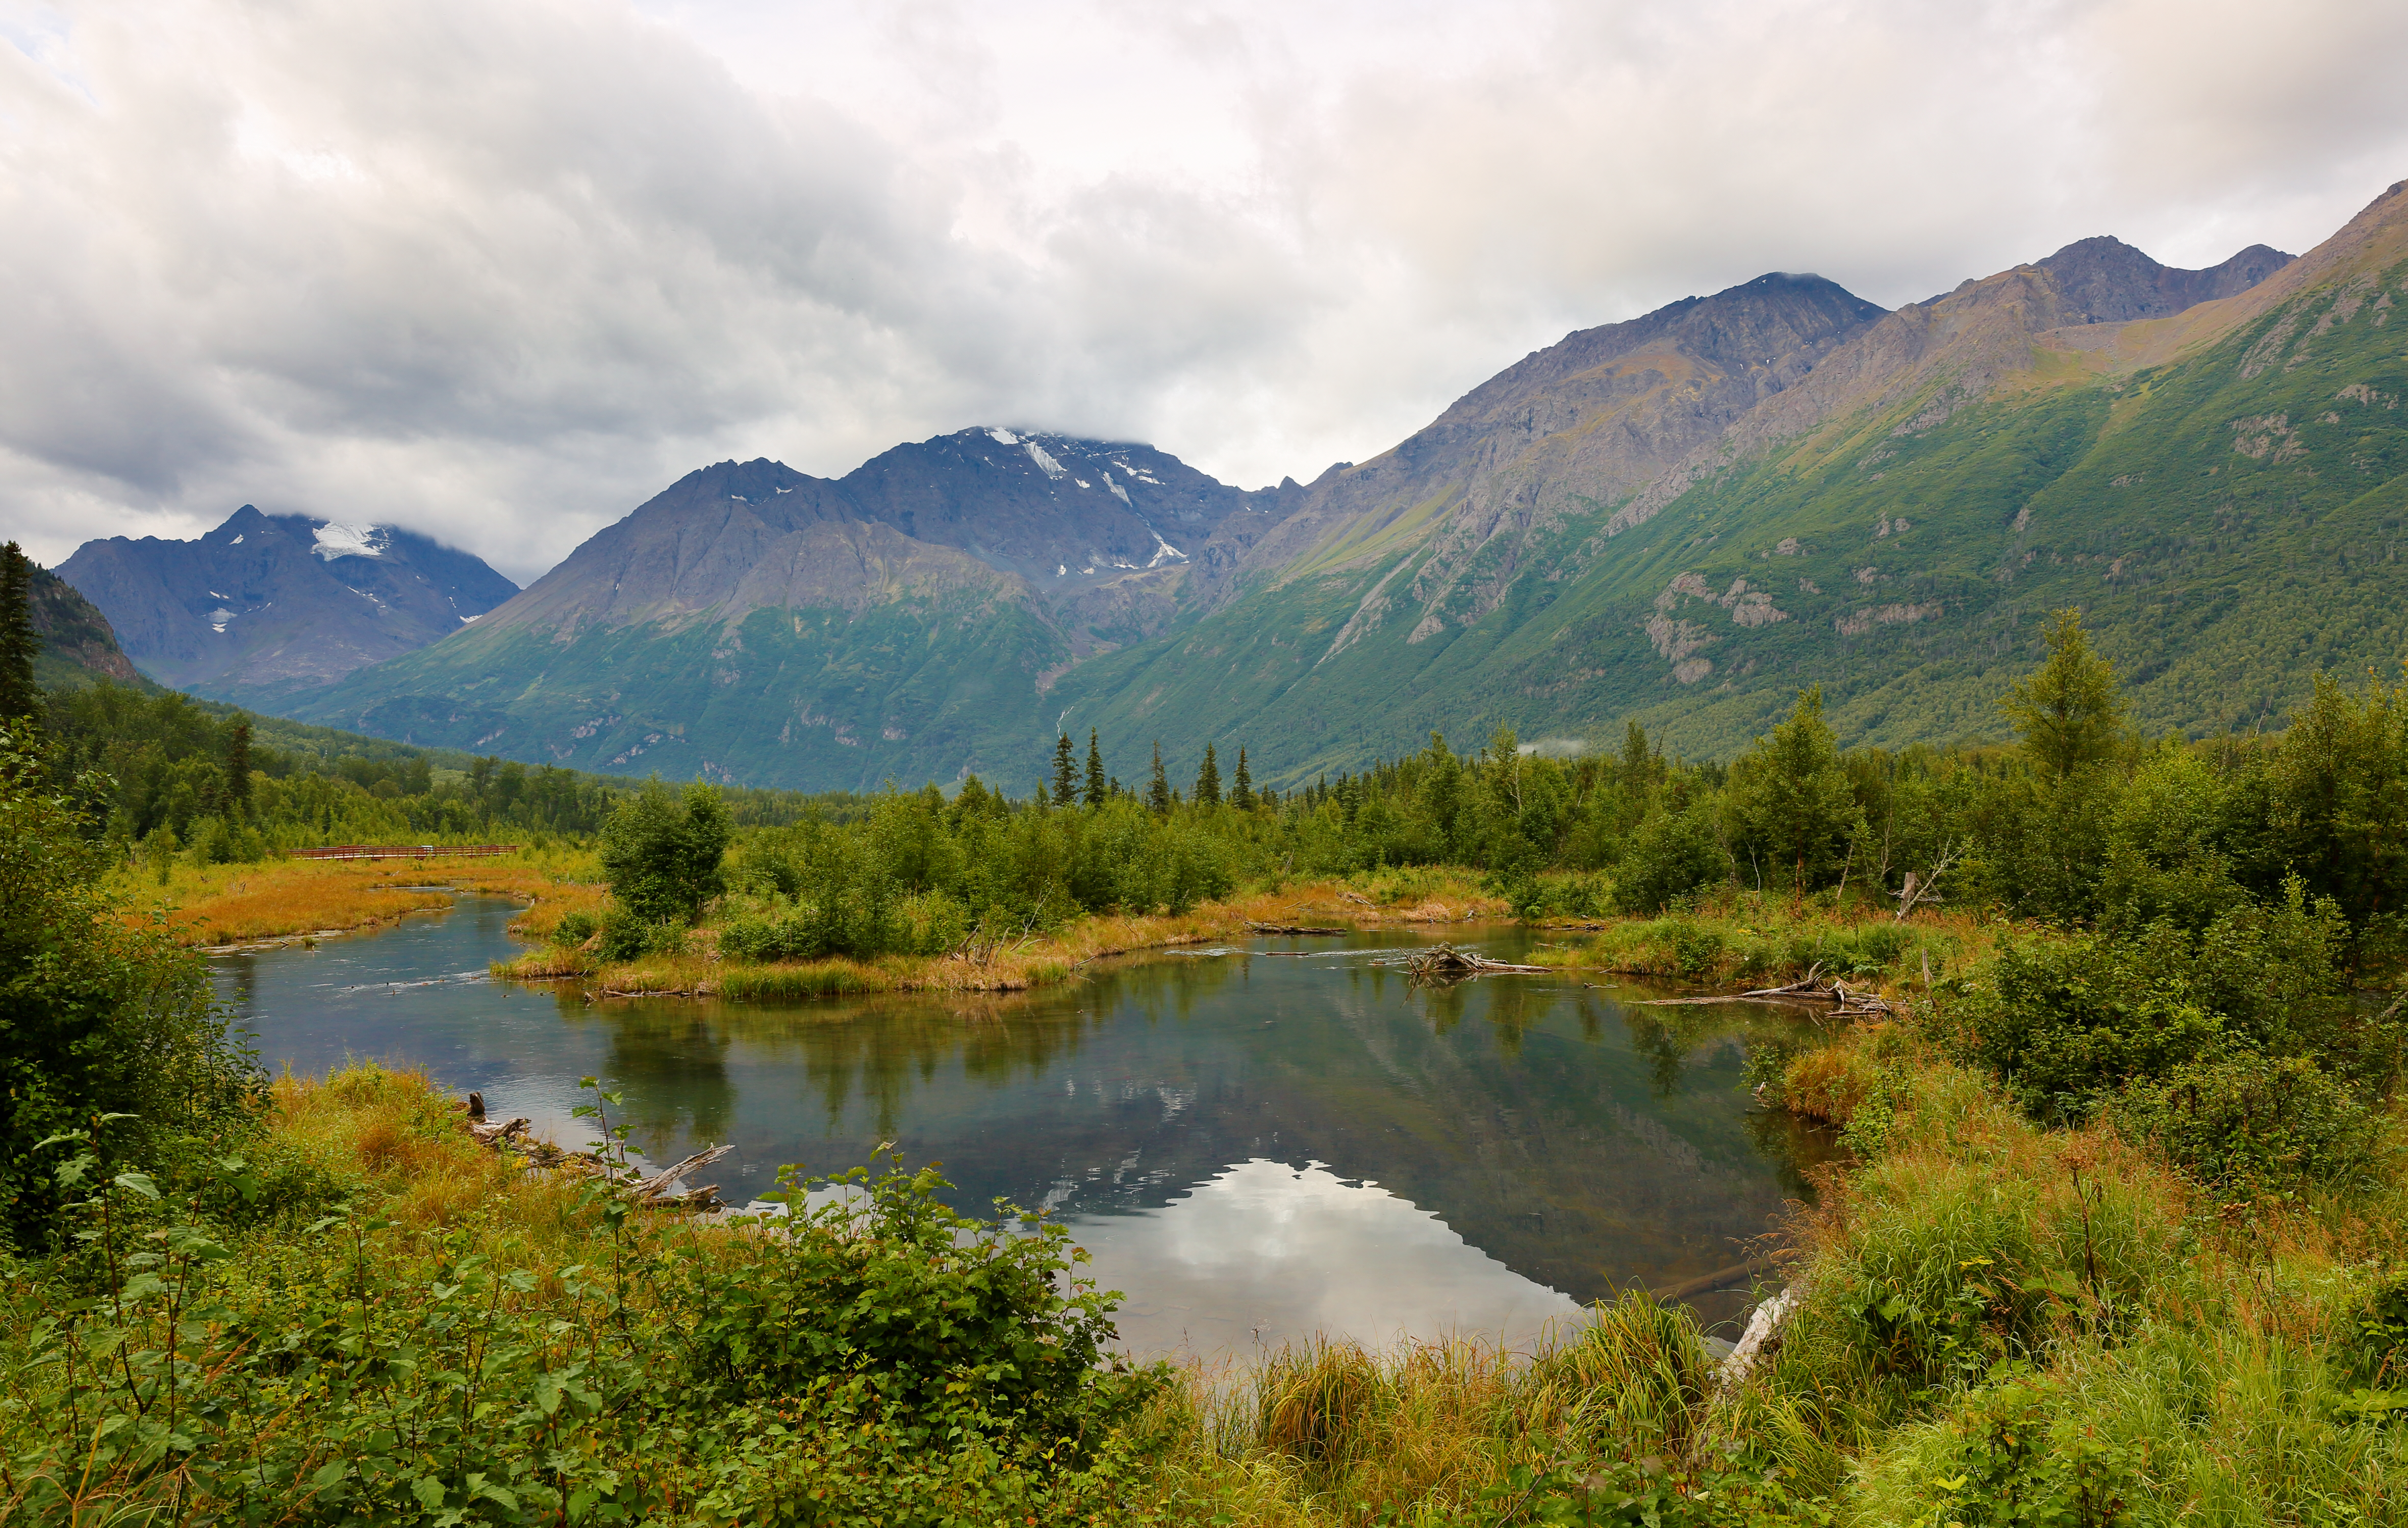 Eagle River nature center at early morning, Eagle River, Alaska. Forty minutes from downtown Anchorage, Eagle River Nature Center is a gateway to Chugach State Park and a glacial river valley. Shutterstock image via user Jay Yuan